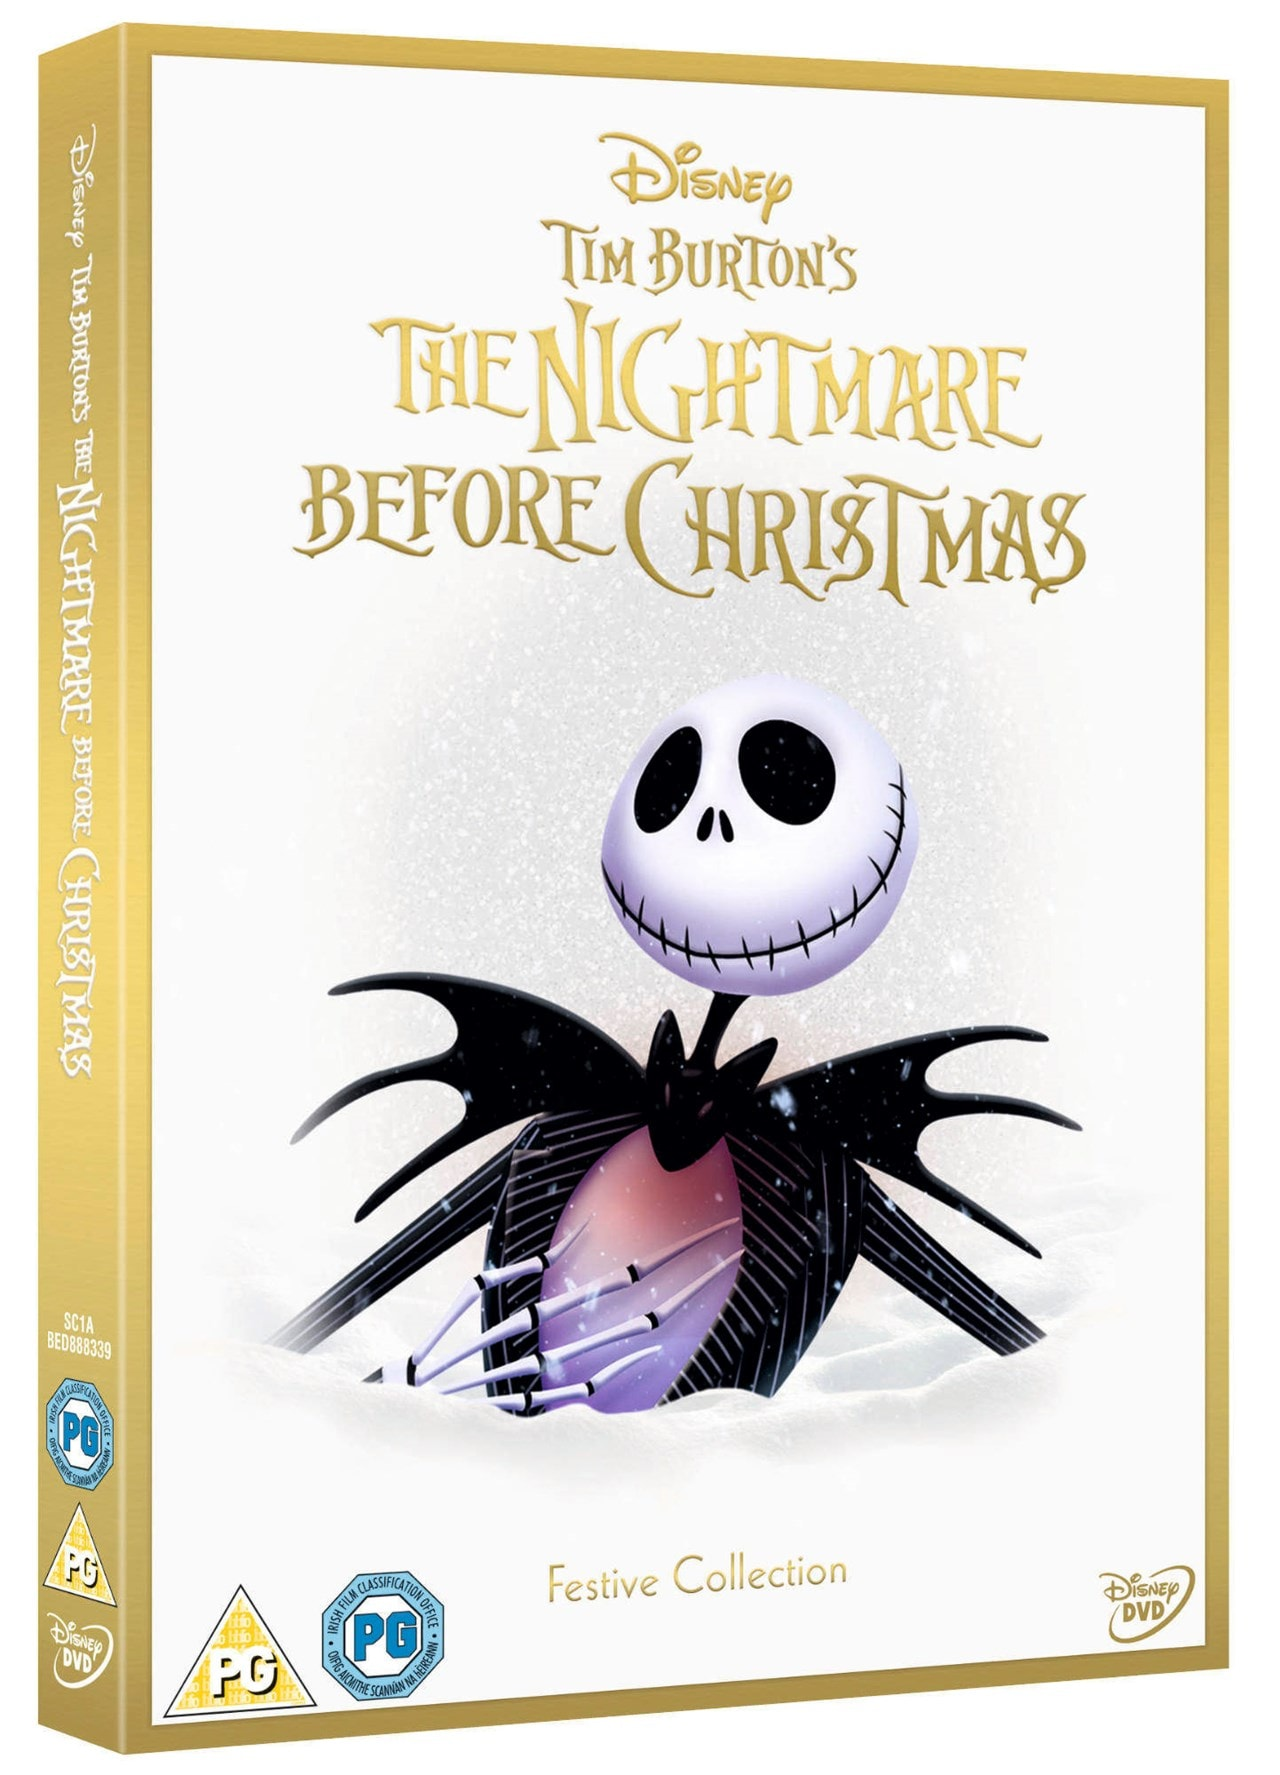 The Nightmare Before Christmas (hmv Christmas Classics) - 2